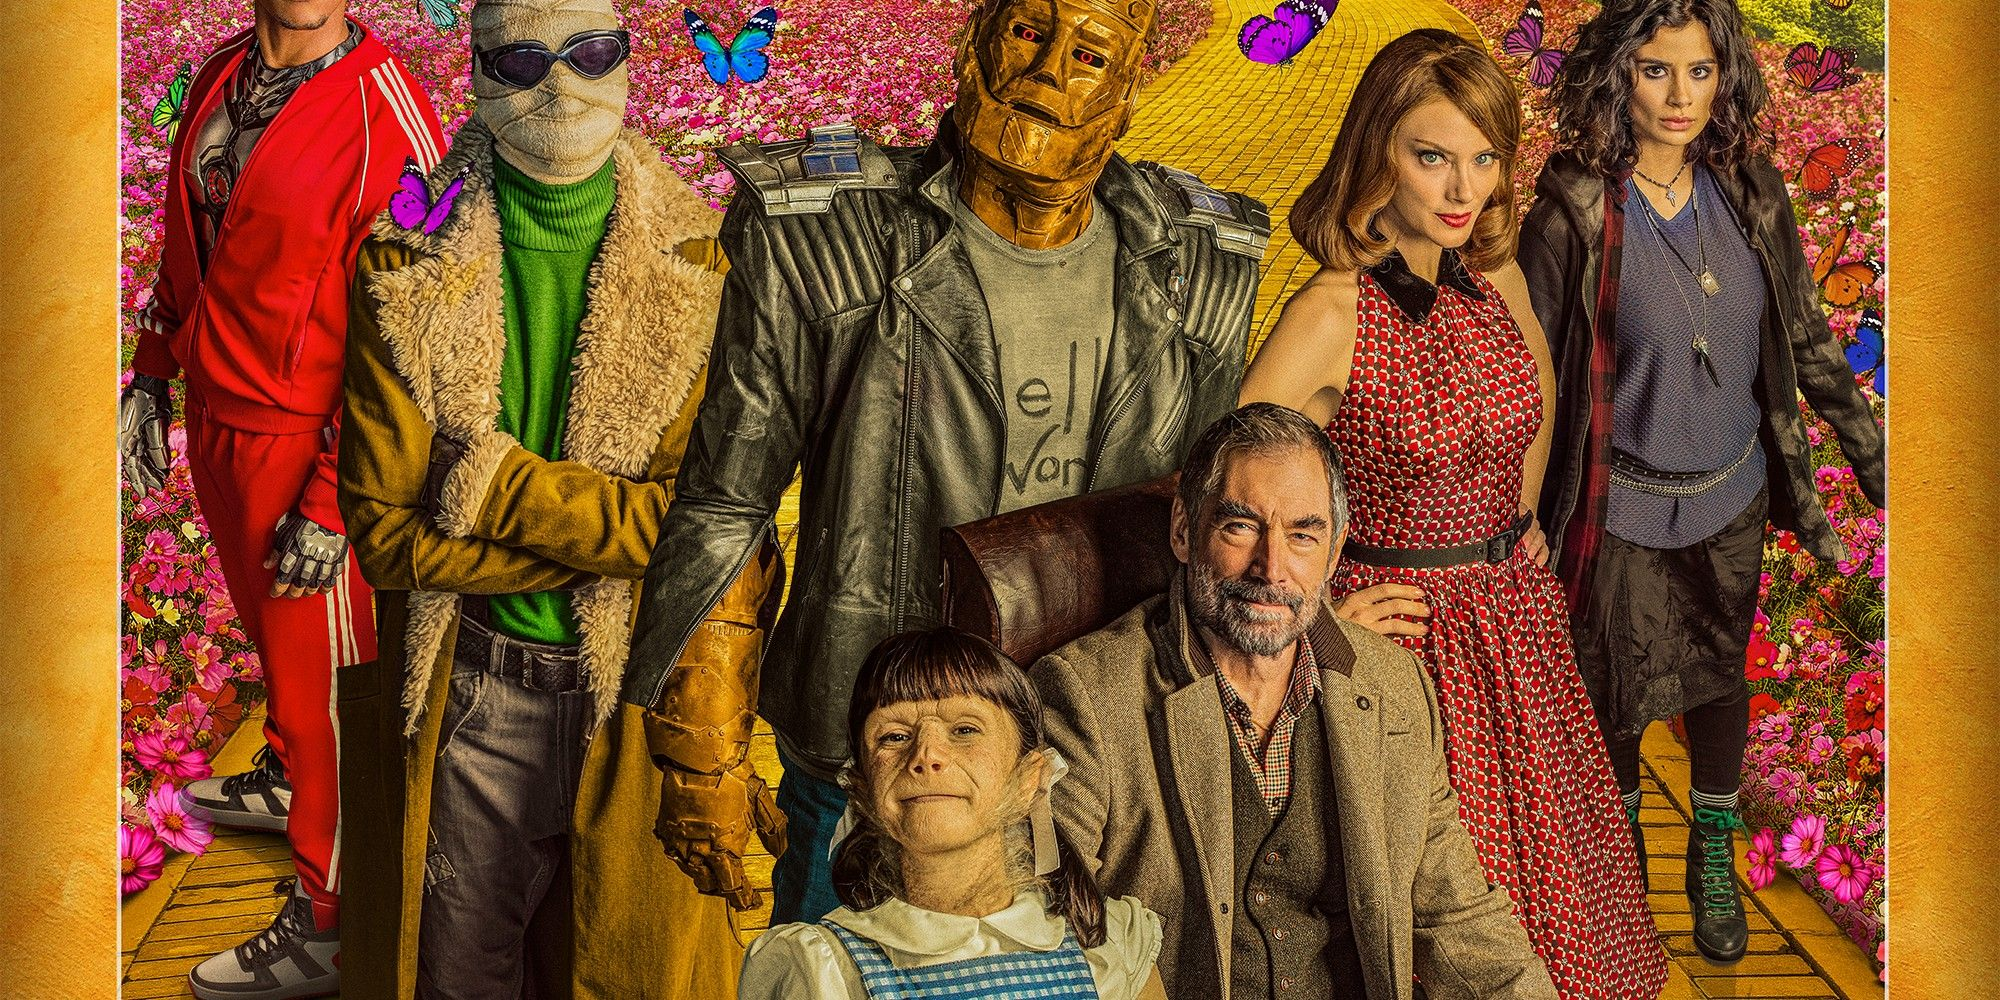 Doom Patrol Season 2 Poster Reveals First Look At New Character